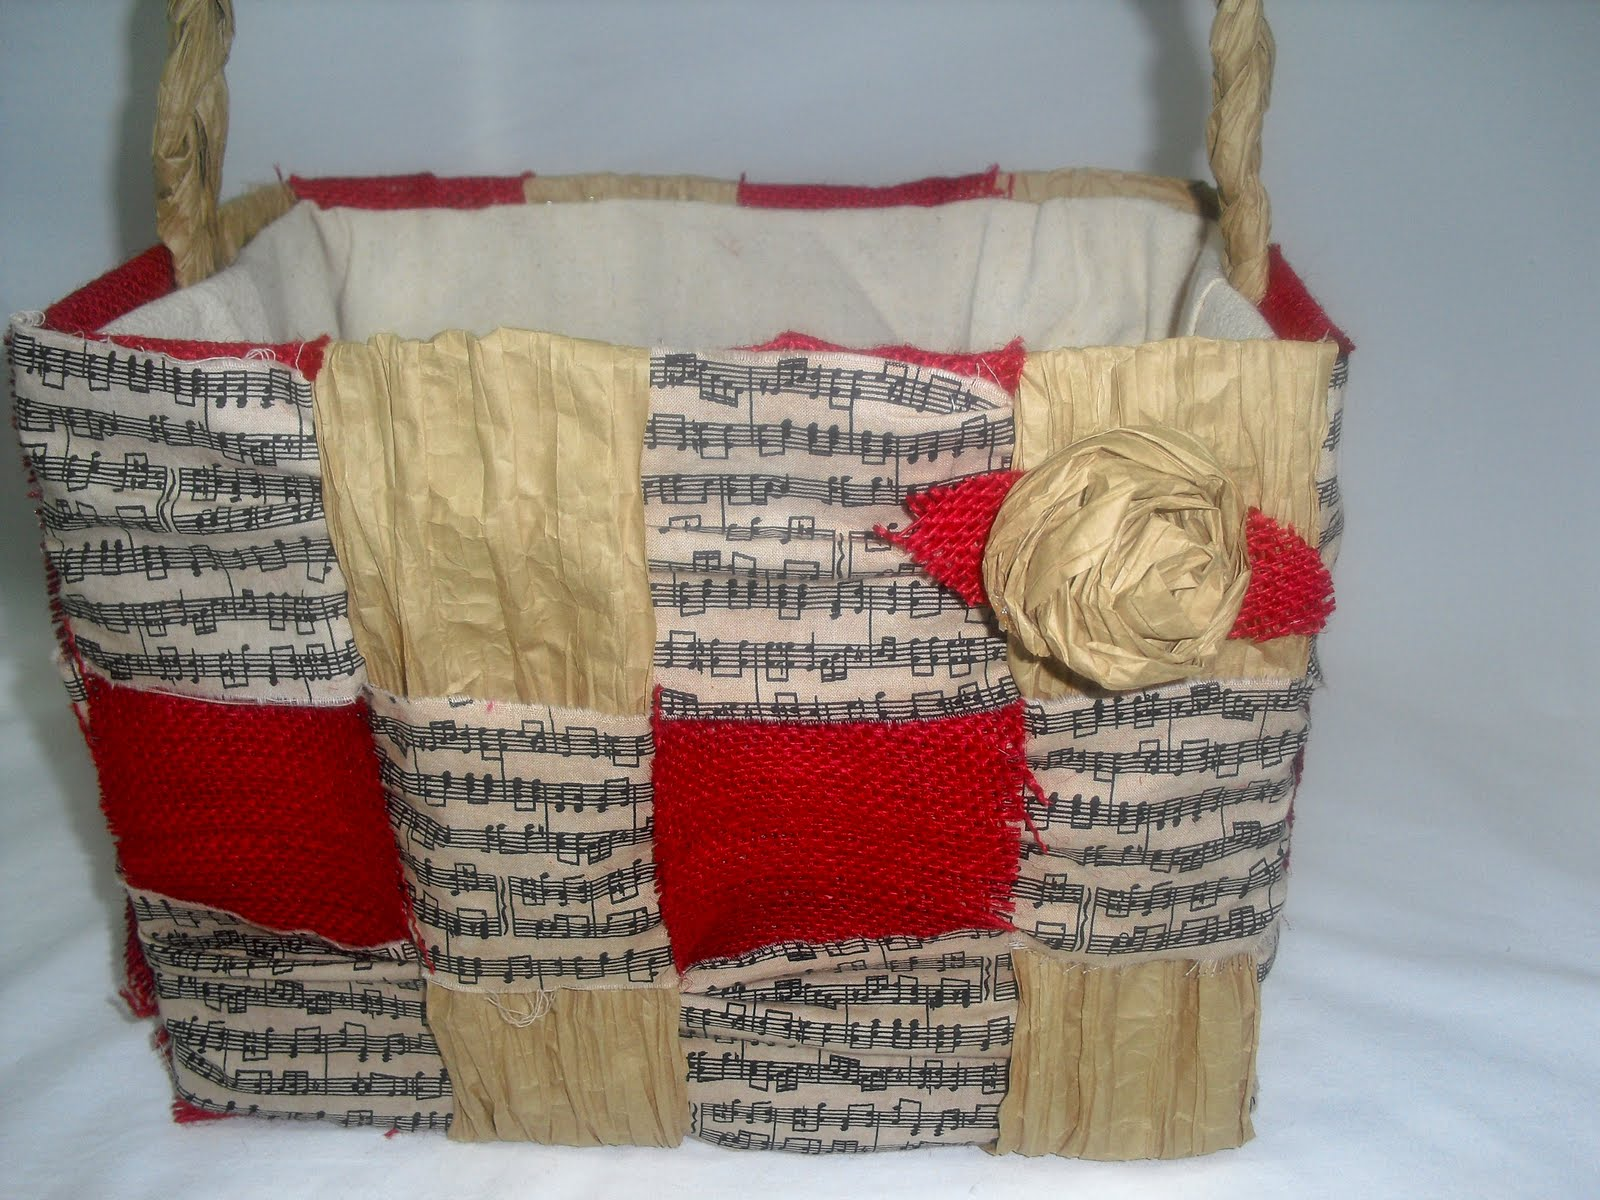 A good first project to demonstrate the power of recycled paper bags is a garden basket. Garden baskets are handsome, easy to make and decorate, and .